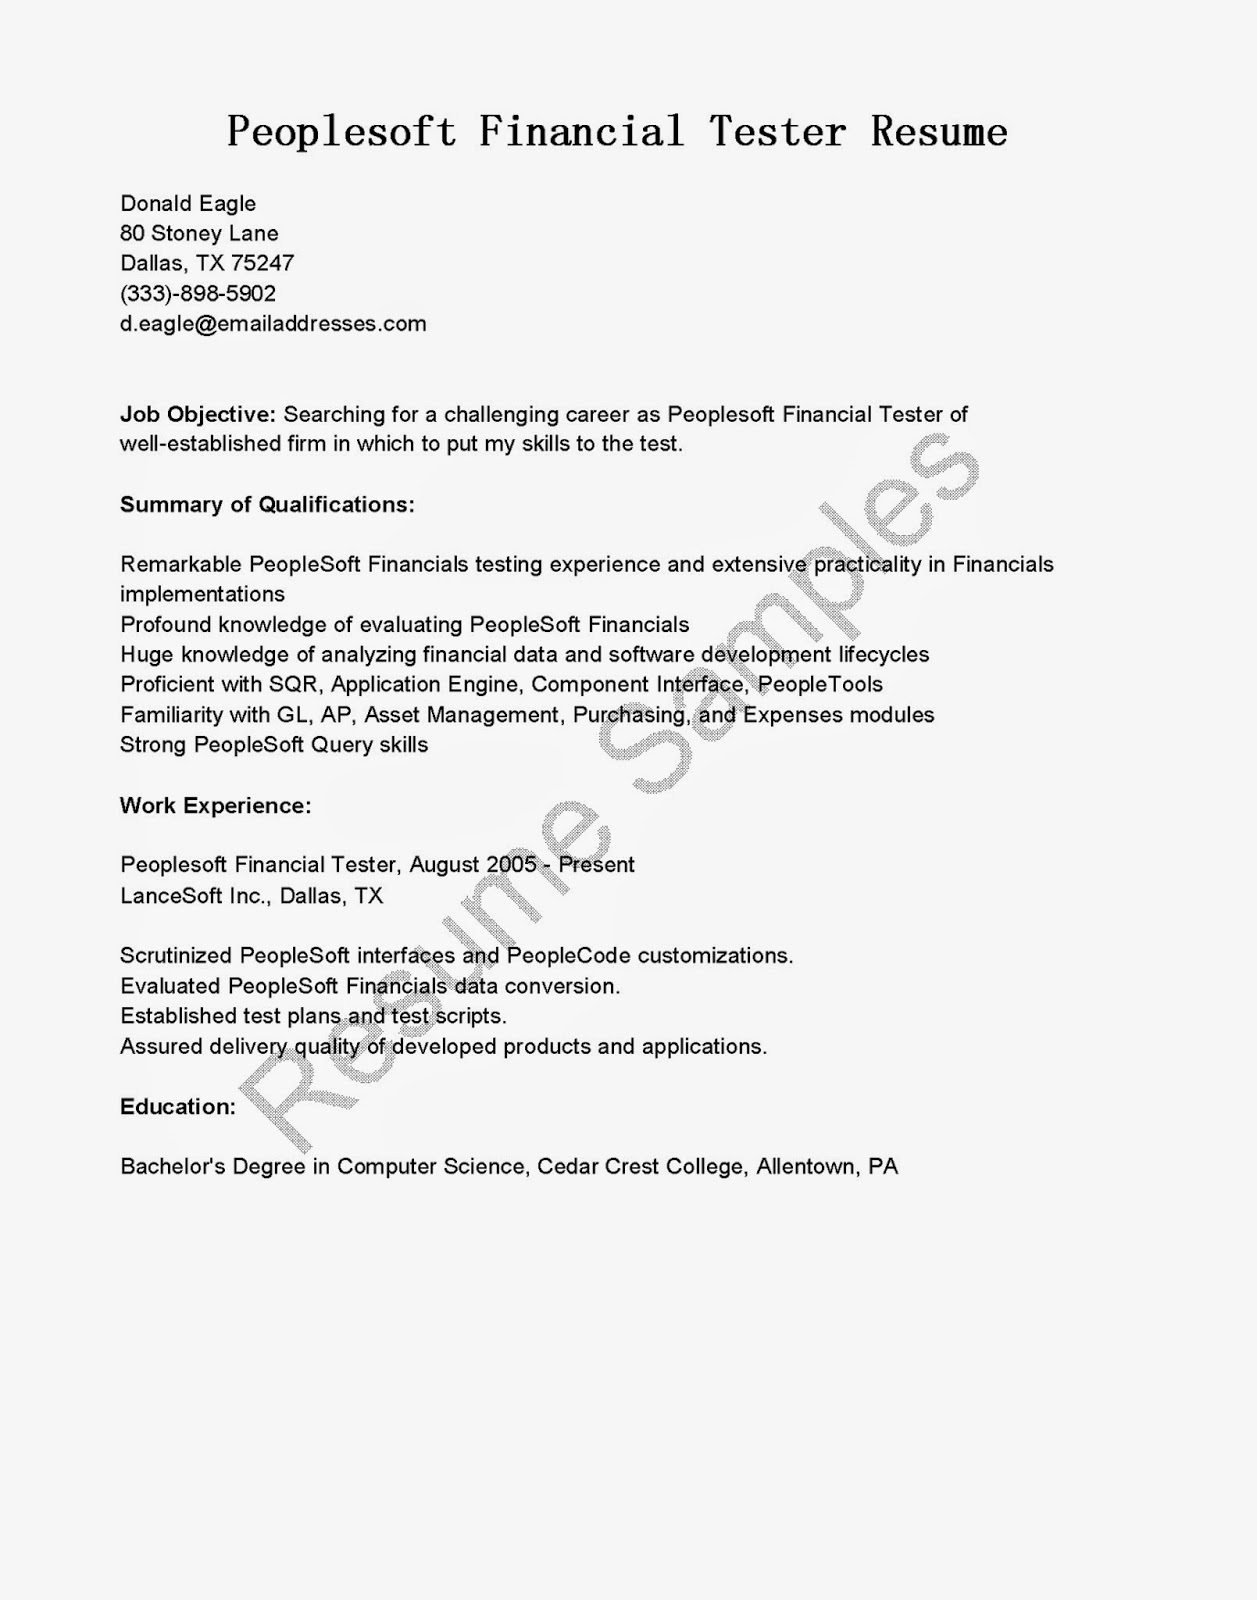 download sap basis resume - People Soft Consultant Resume